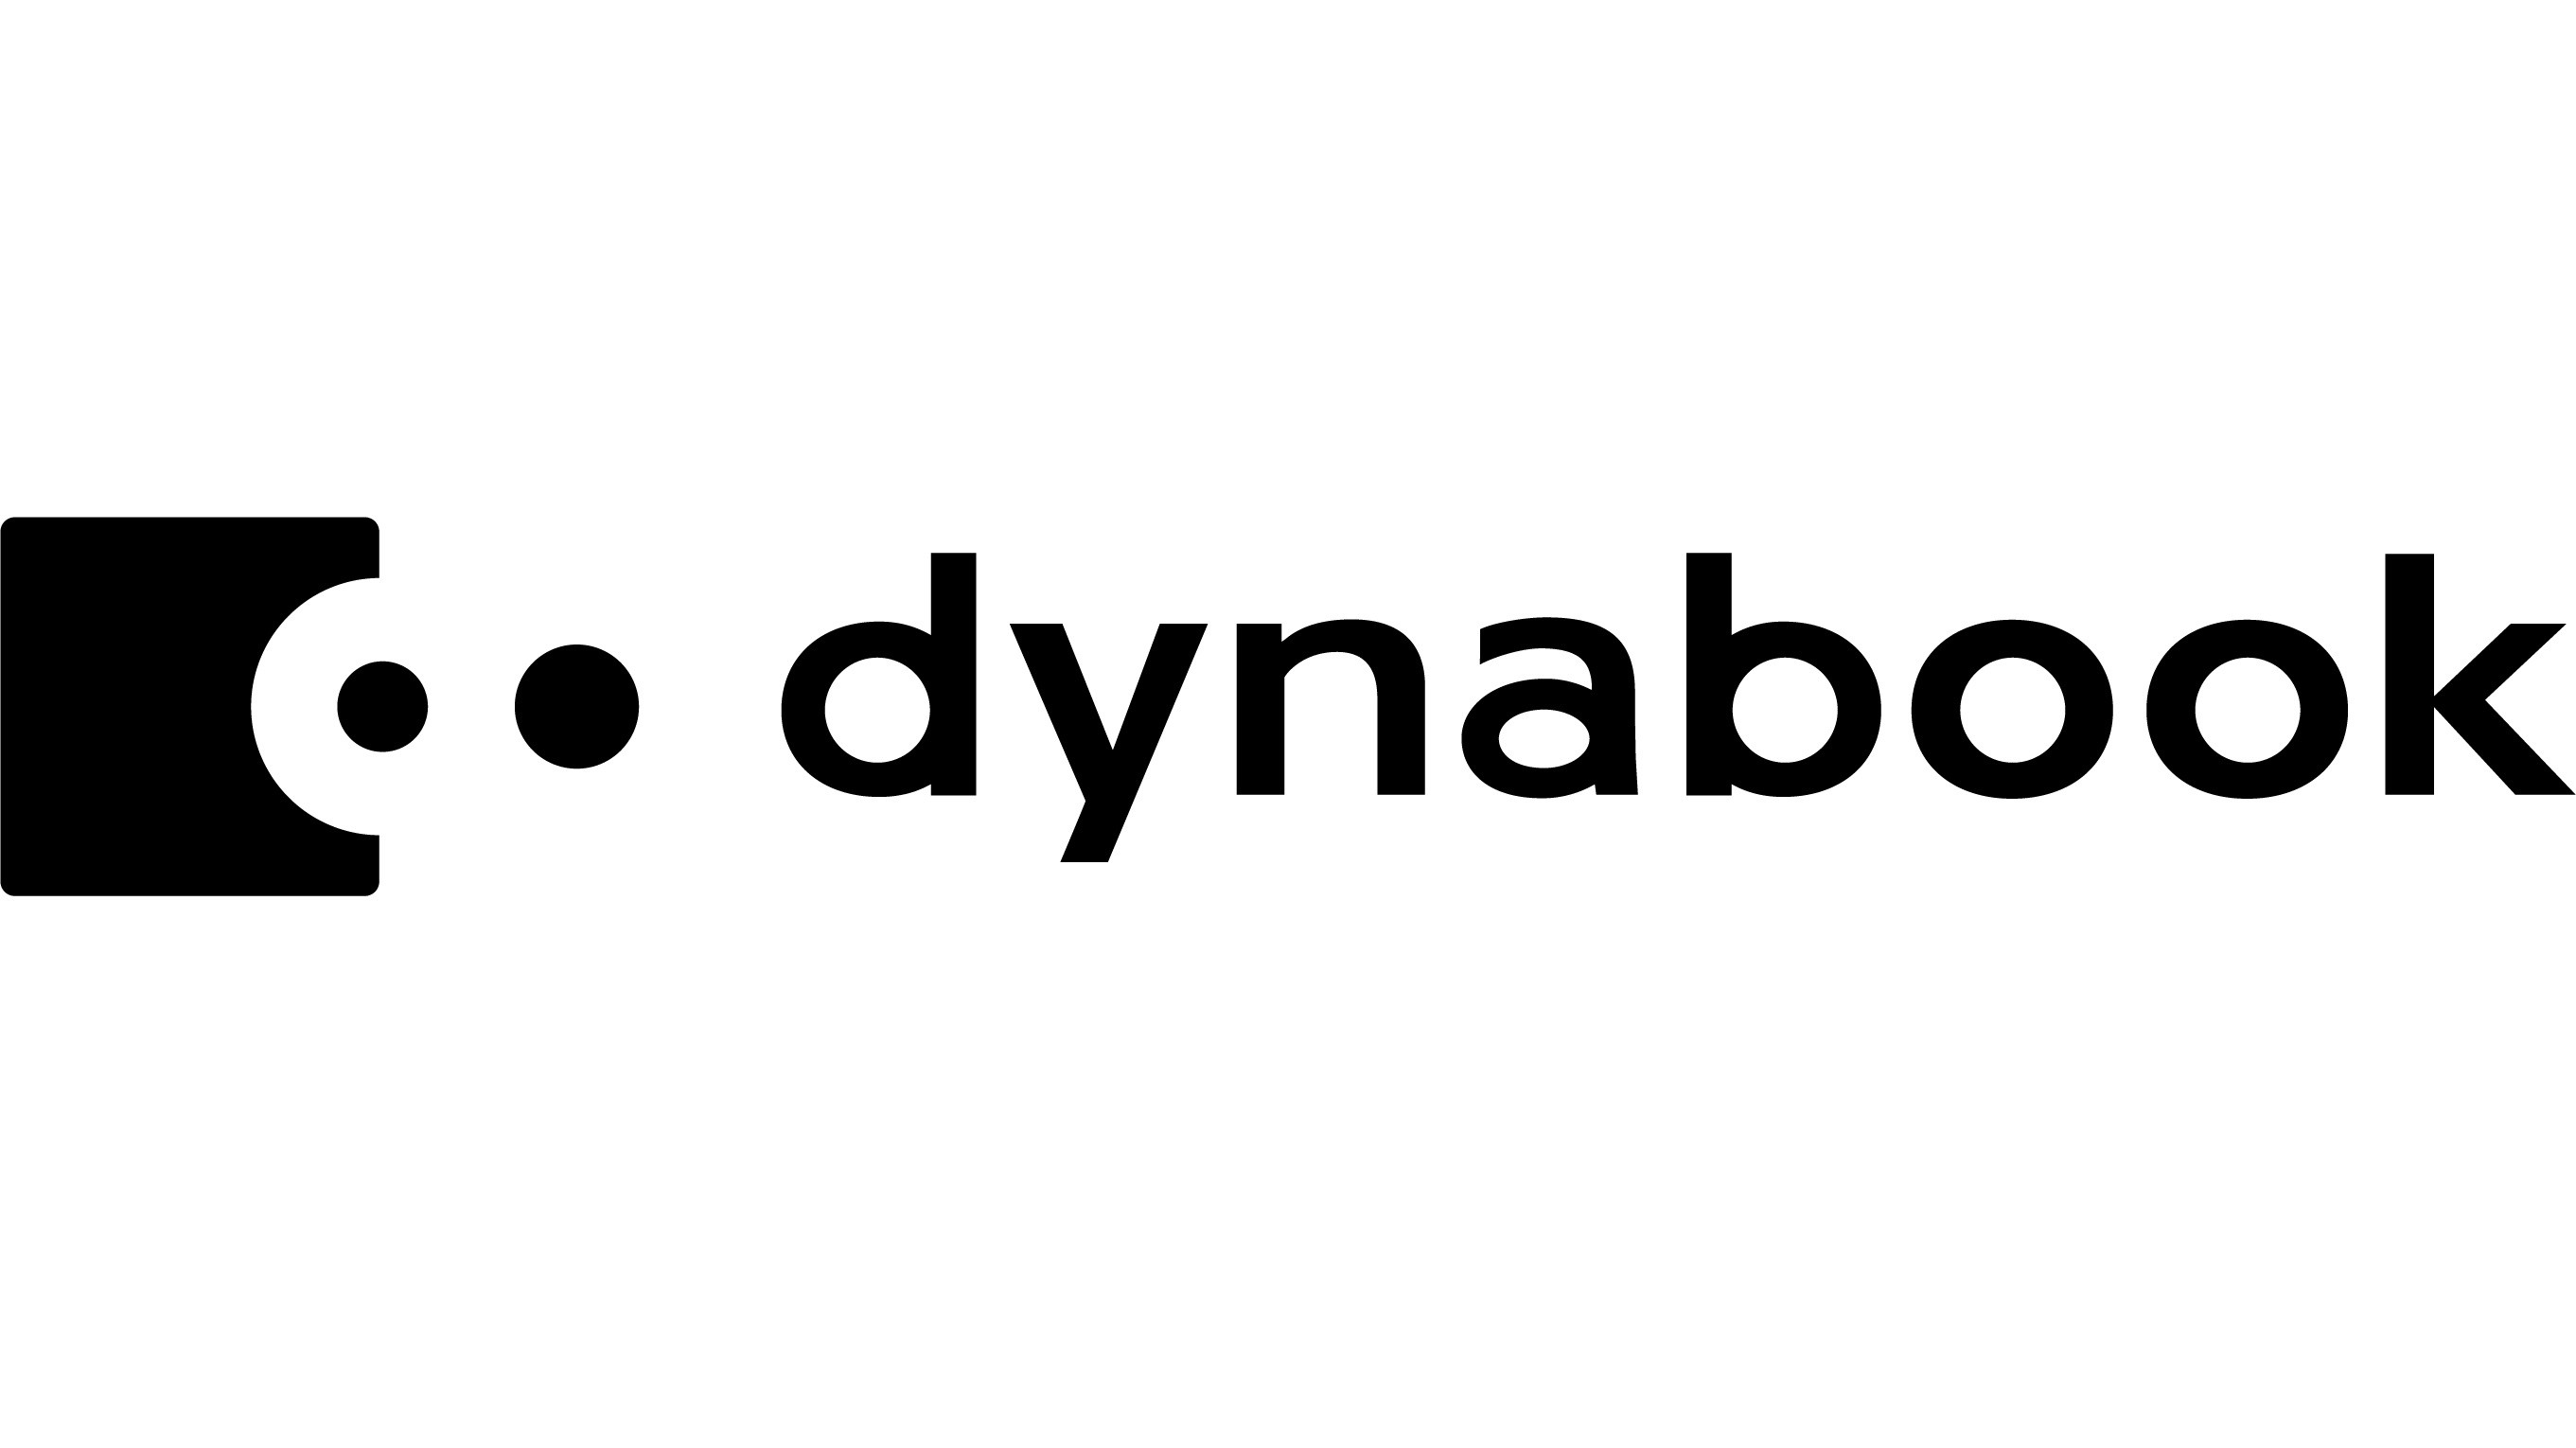 Toshiba changes its name to Dynabook in America - Neowin